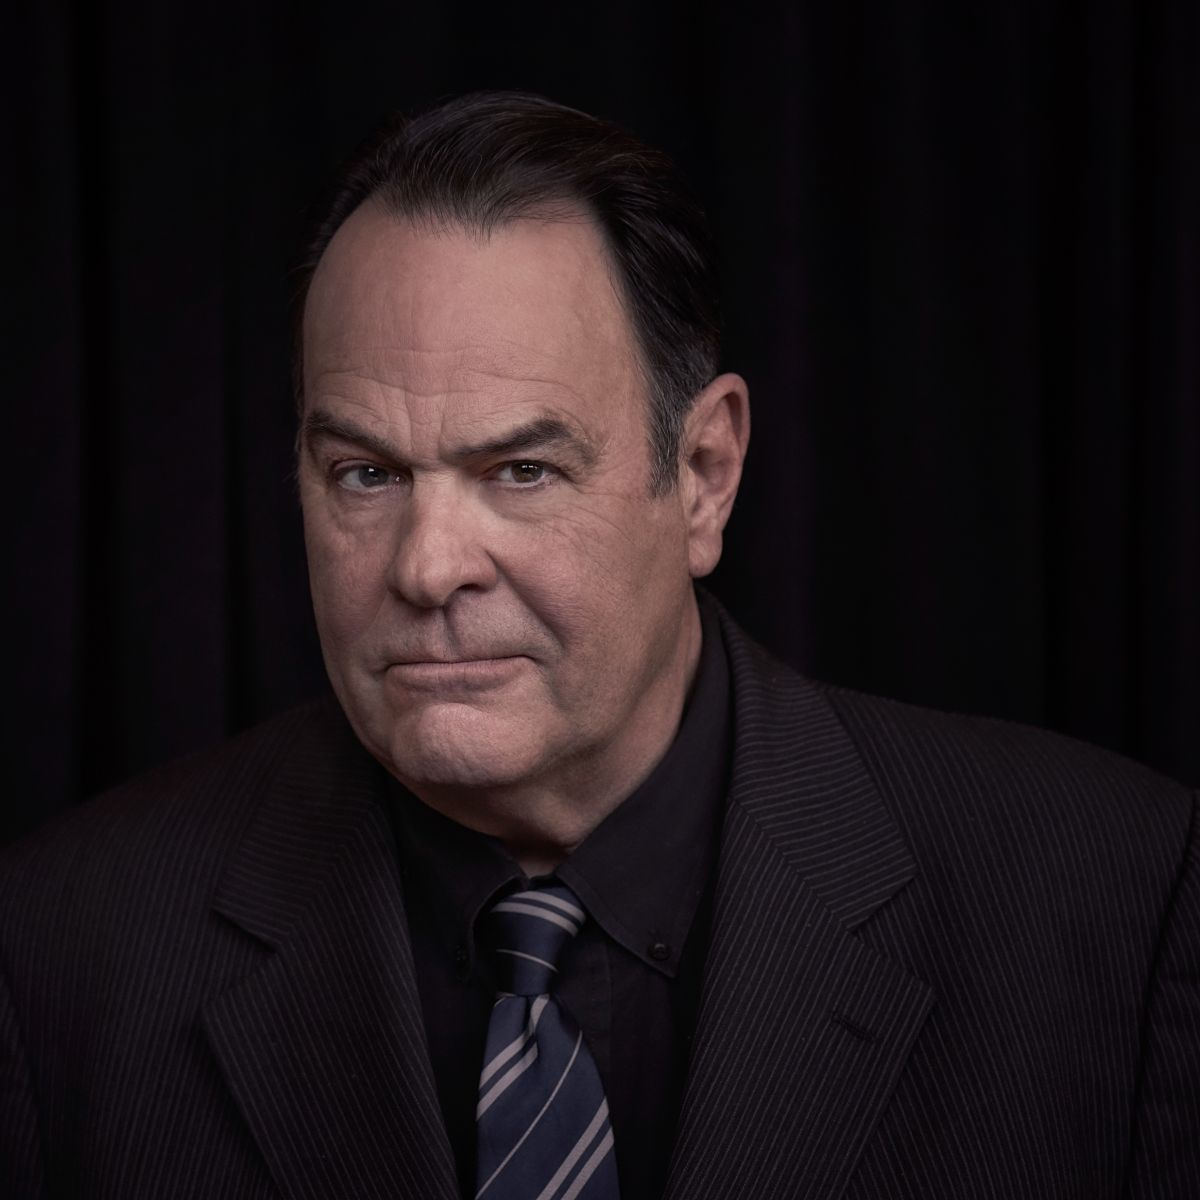 Saloon Media announces start of production on 'Hotel Paranormal' S2 and return of Dan Aykroyd as narrator